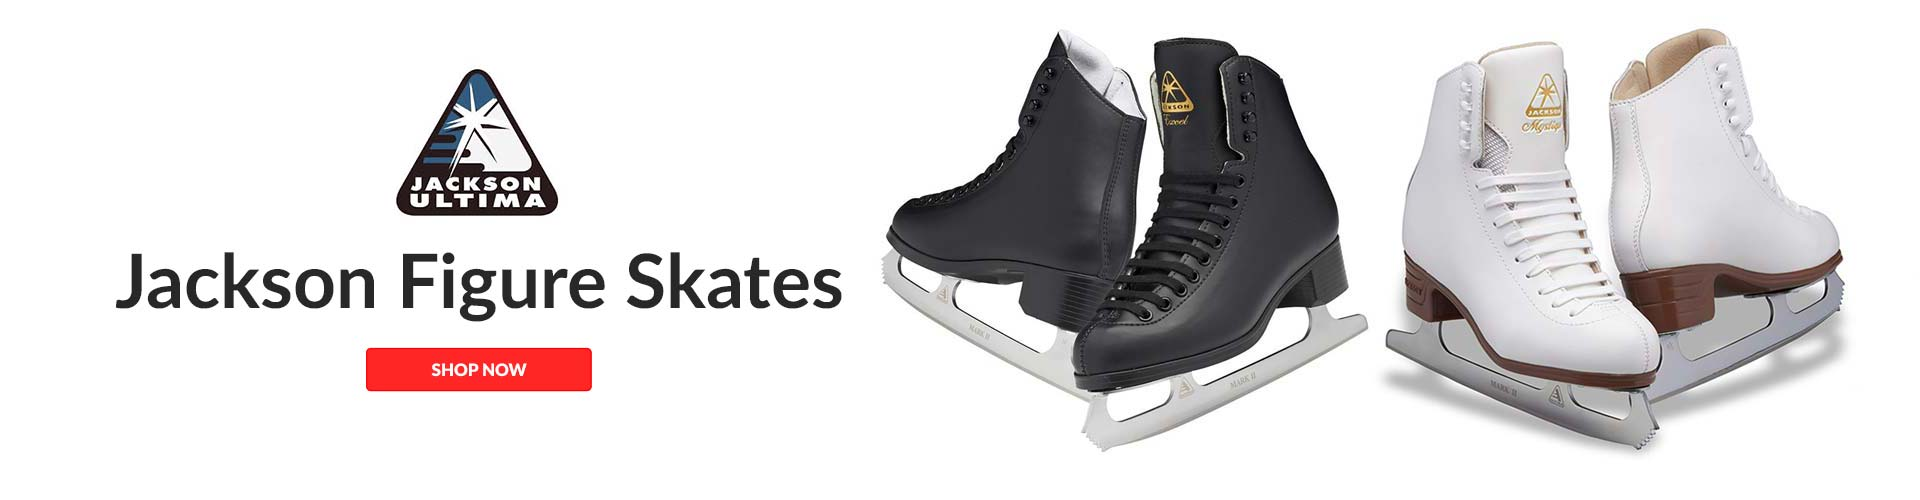 Shop Jackson Figure Skates Available For Sale At Source For Sports Stores Near You.